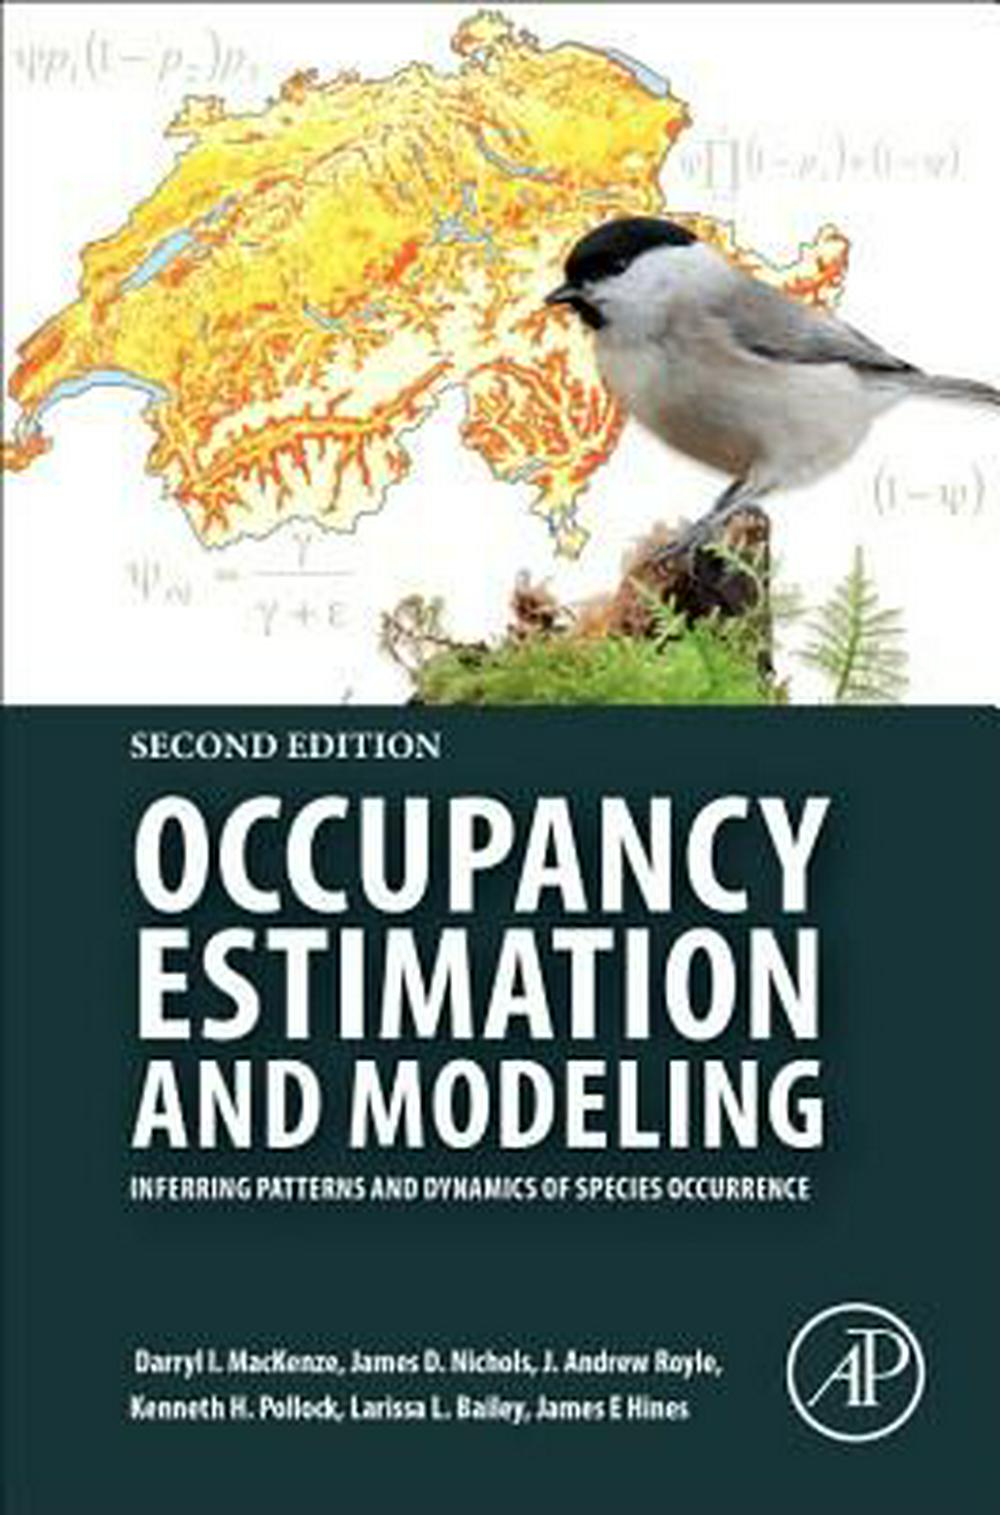 Occupancy Estimation and ModelingInferring Patterns and Dynamics of Species Occu...